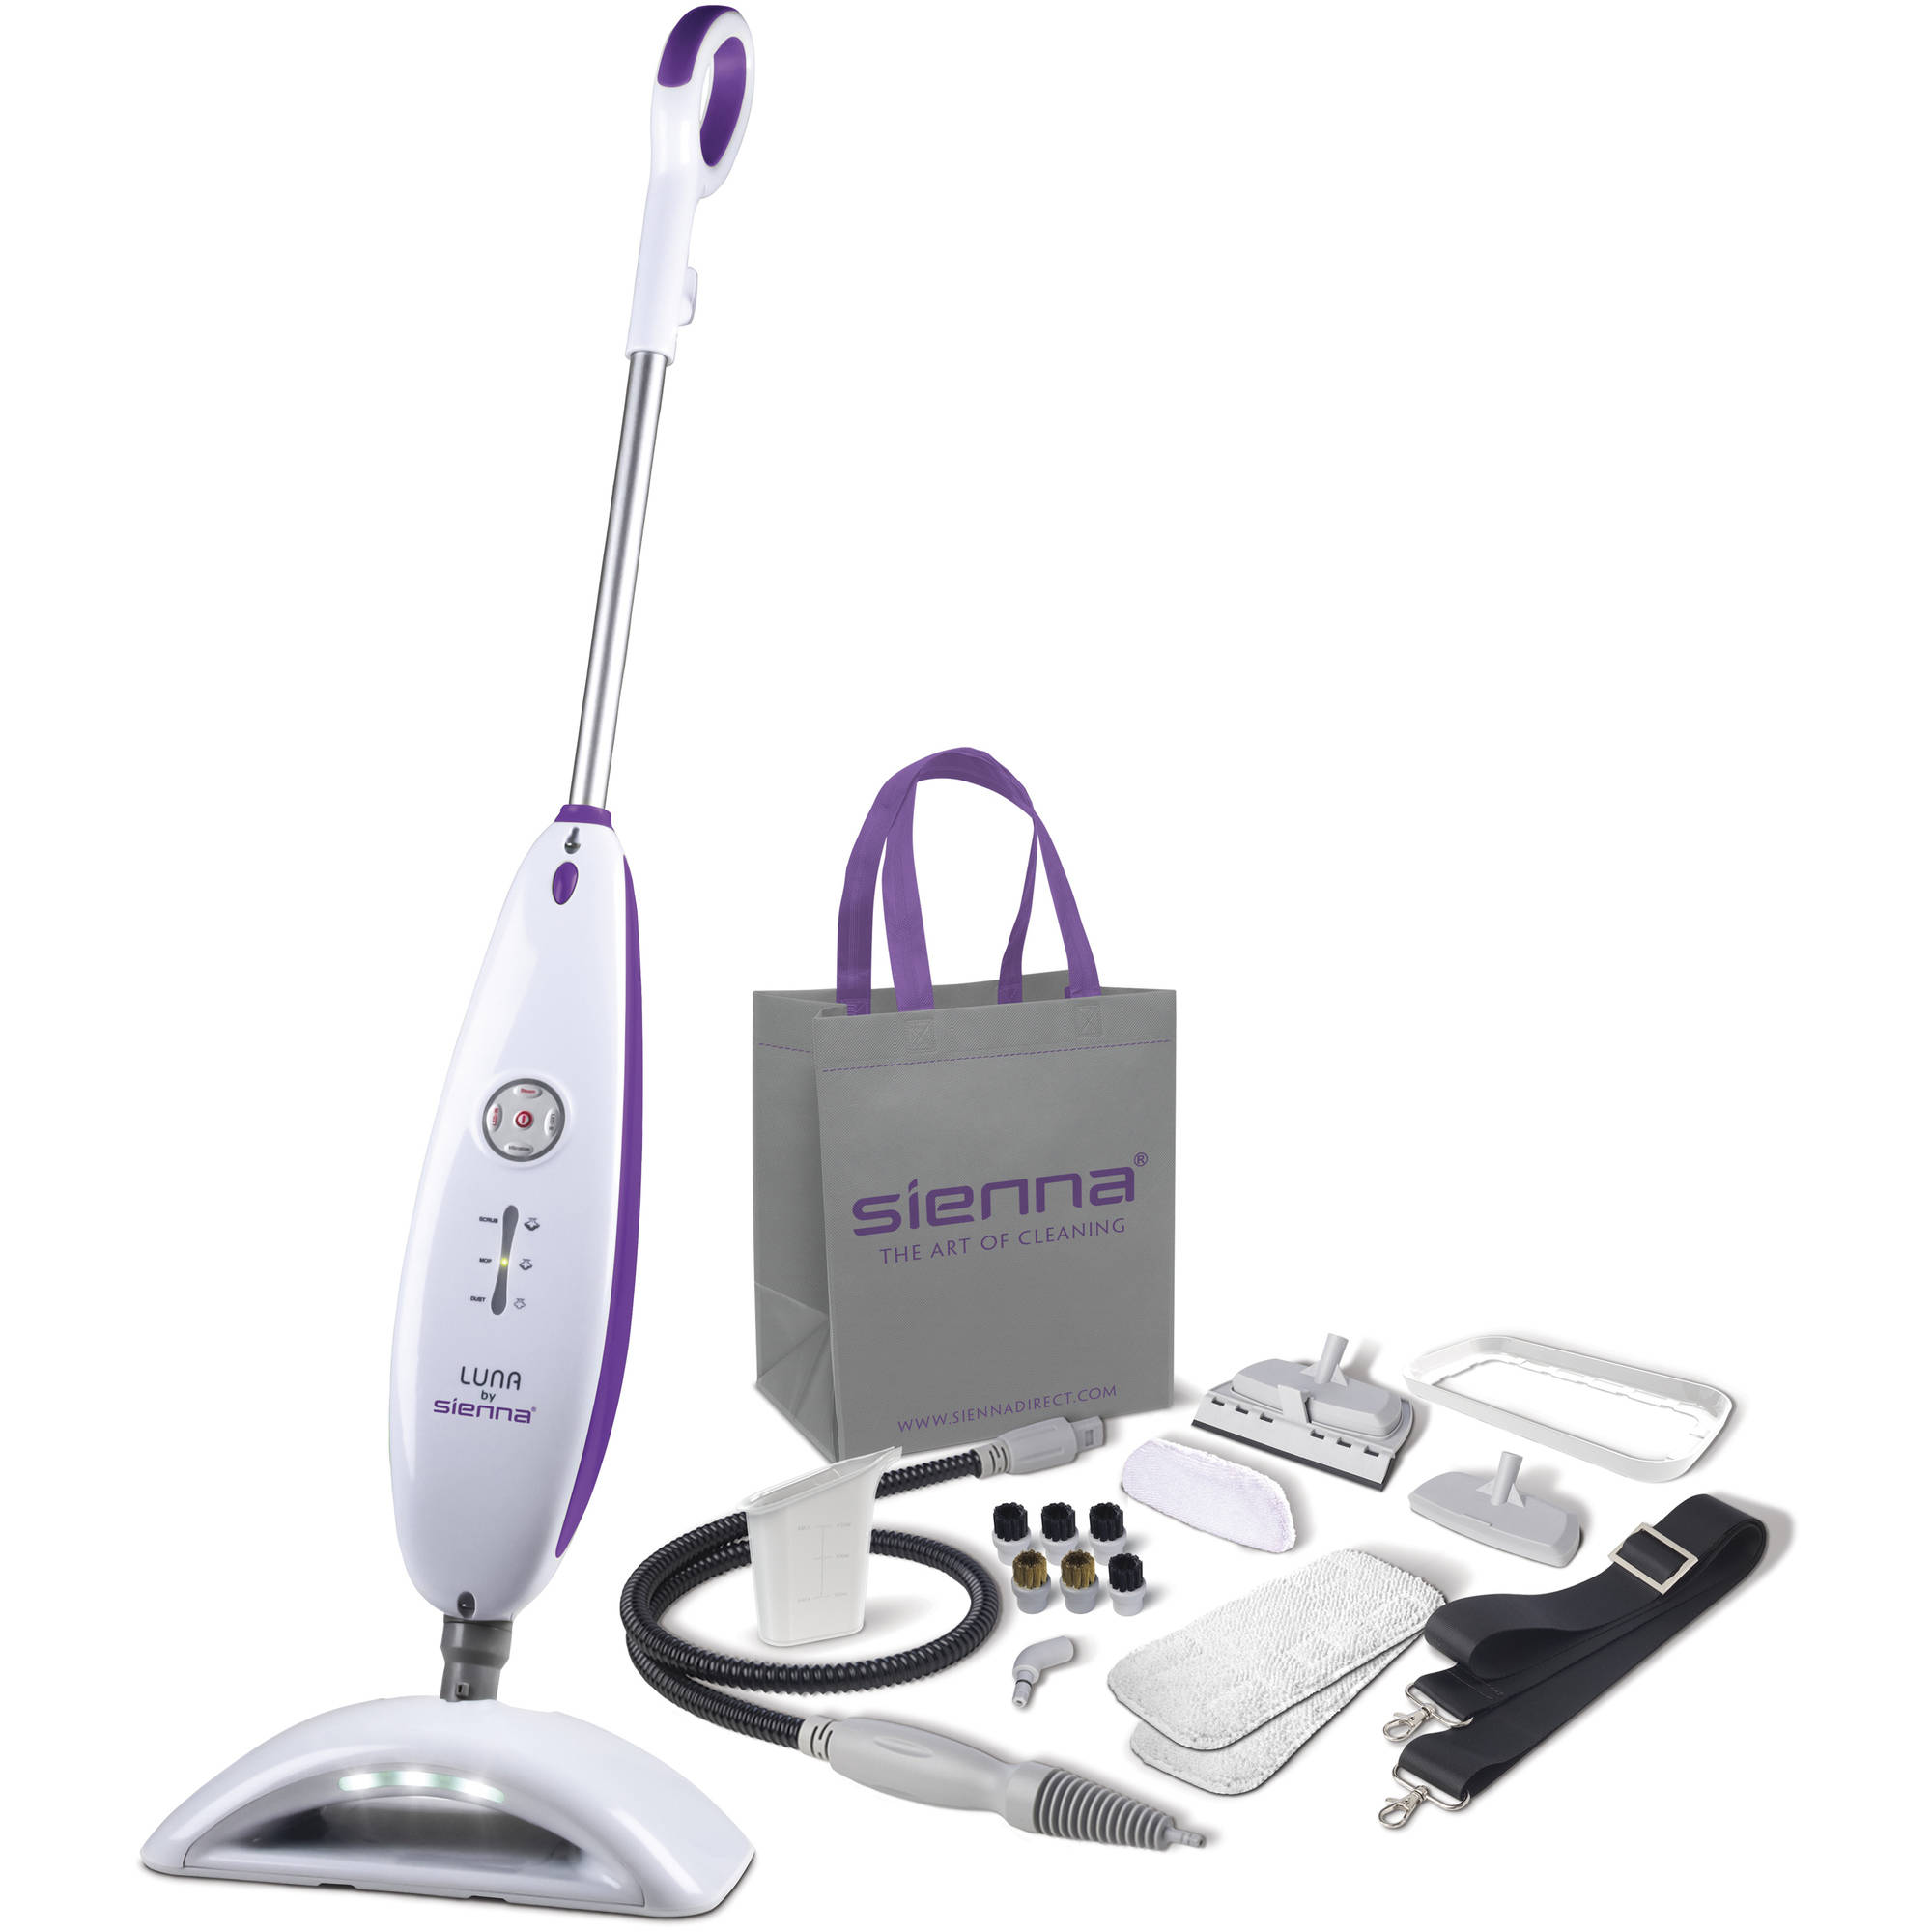 Sienna Luna Plus Steam Cleaning System, SSM-3016 Multi Use Portable Steam Cleaner, Micro Pulse Steam Mop